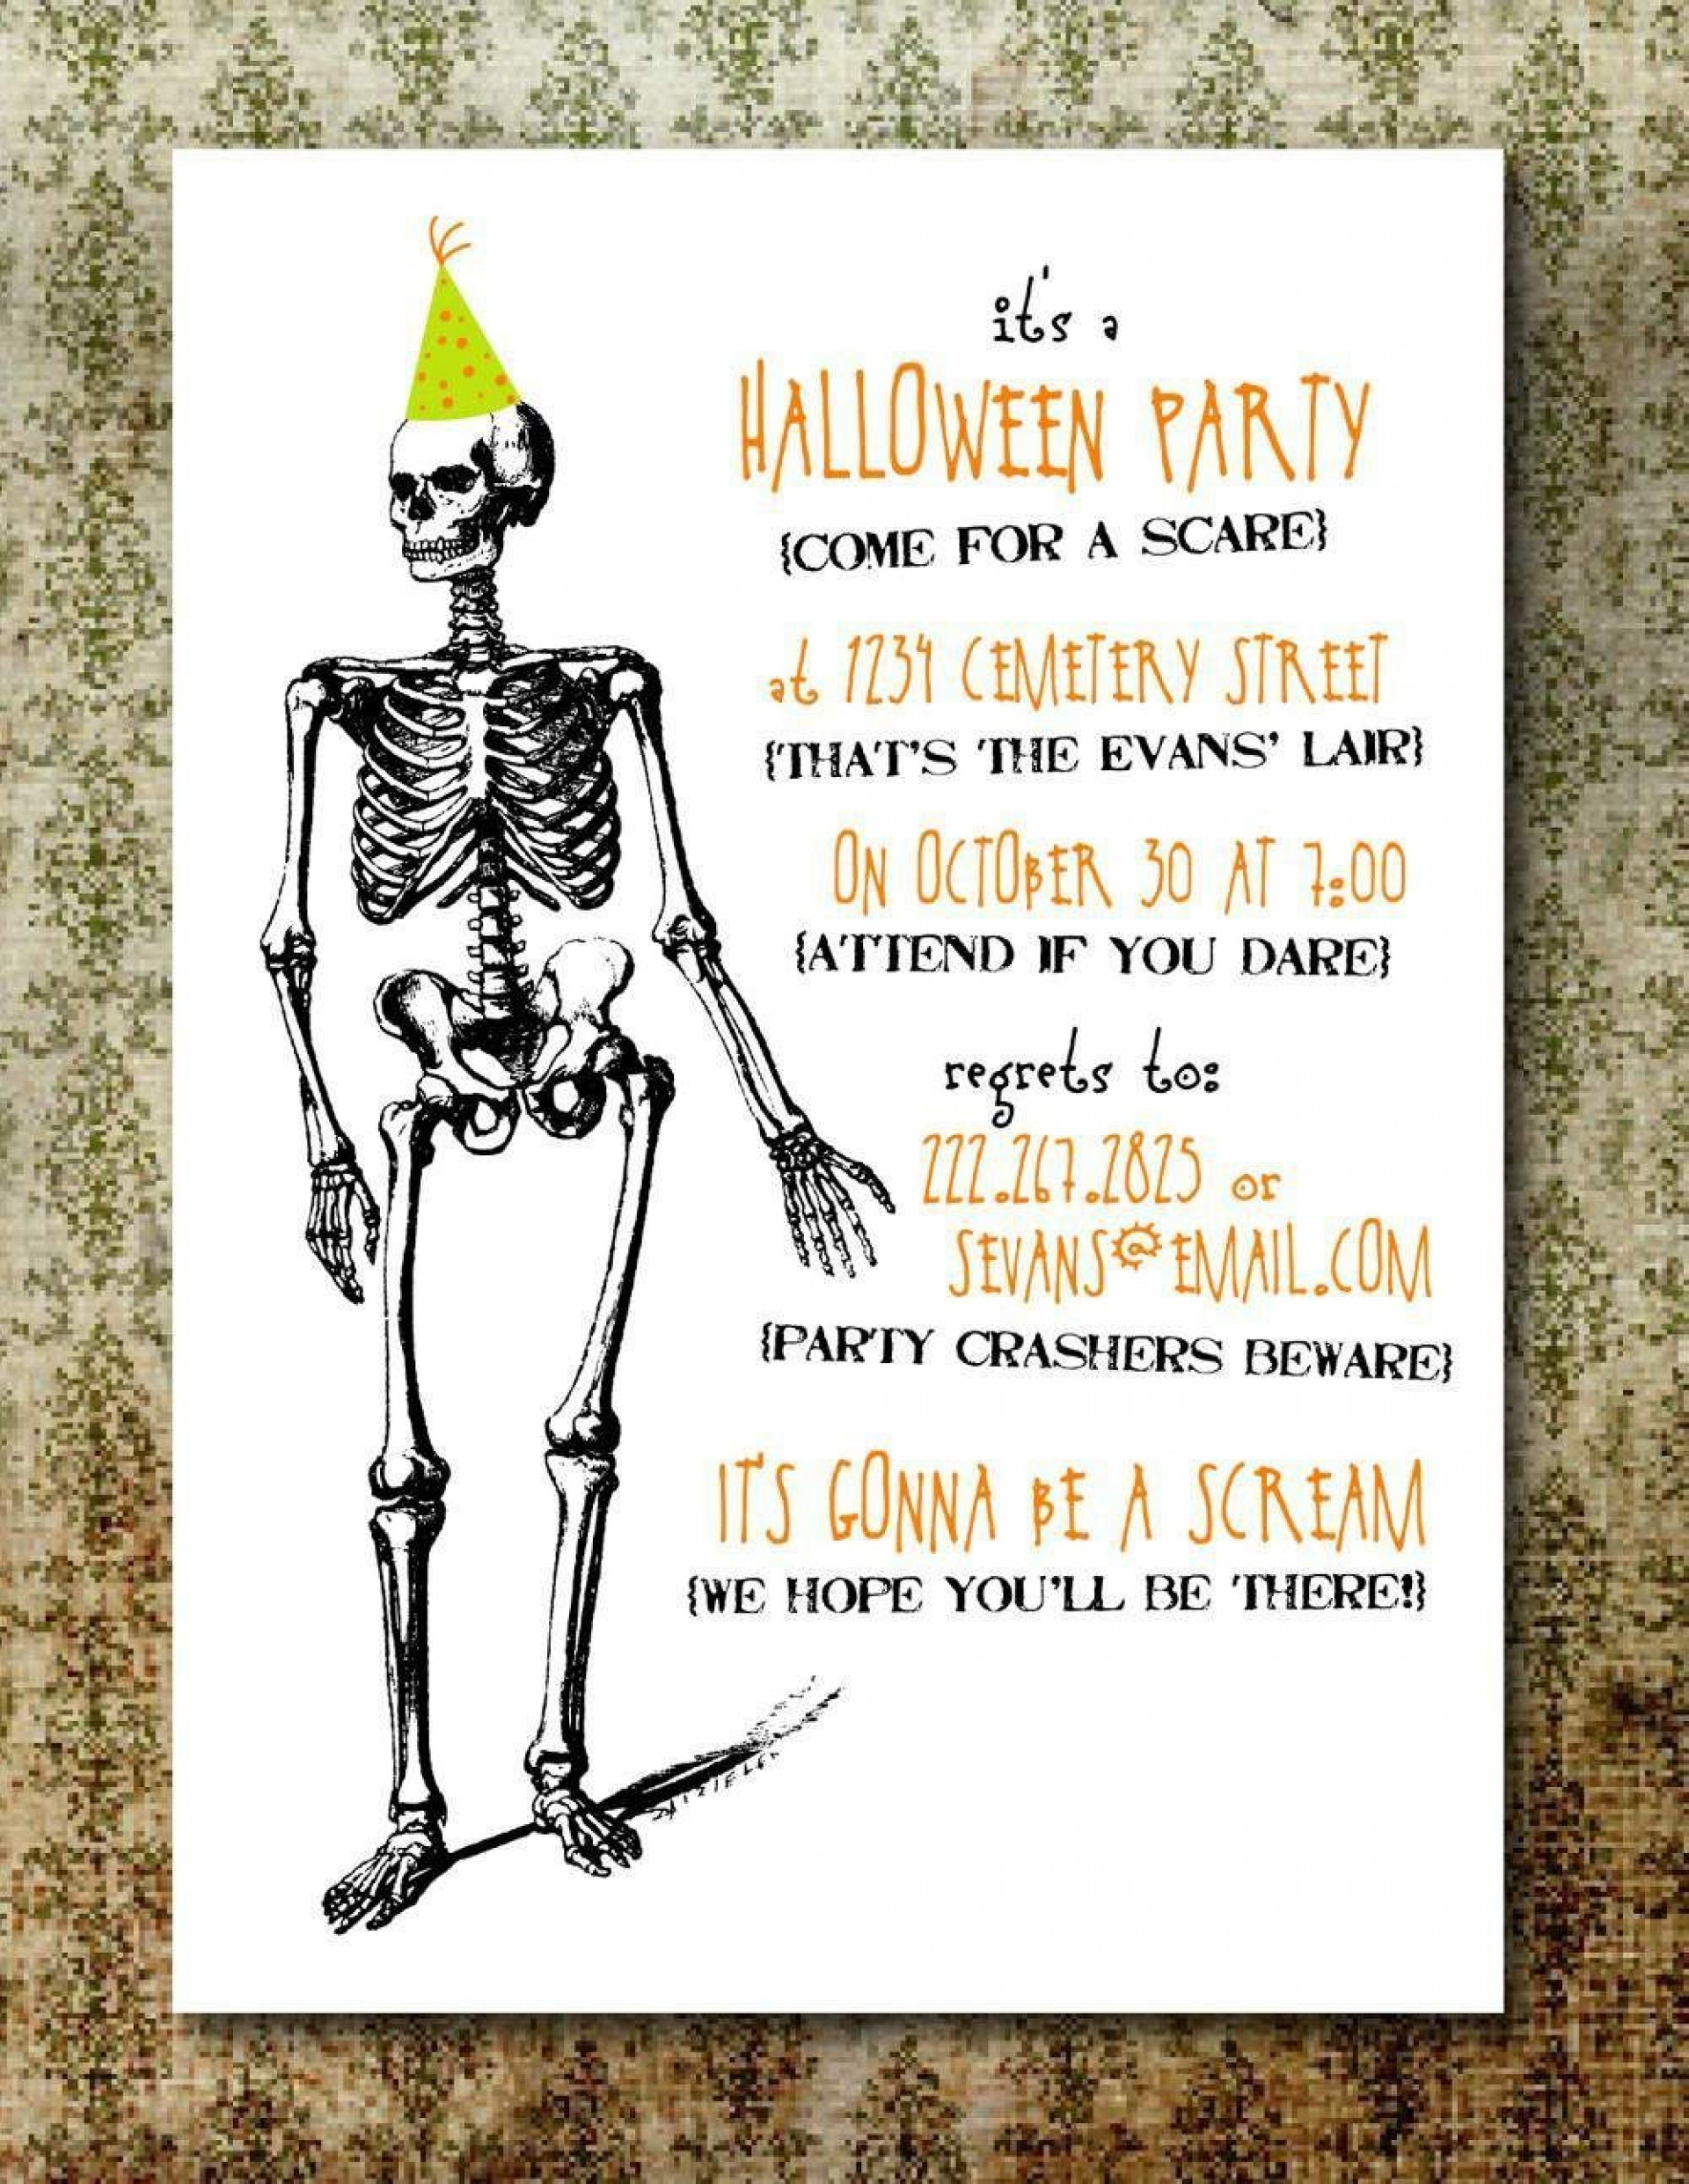 004 Archaicawful Halloween Party Invitation Template High Definition  Templates Scary Spooky1920